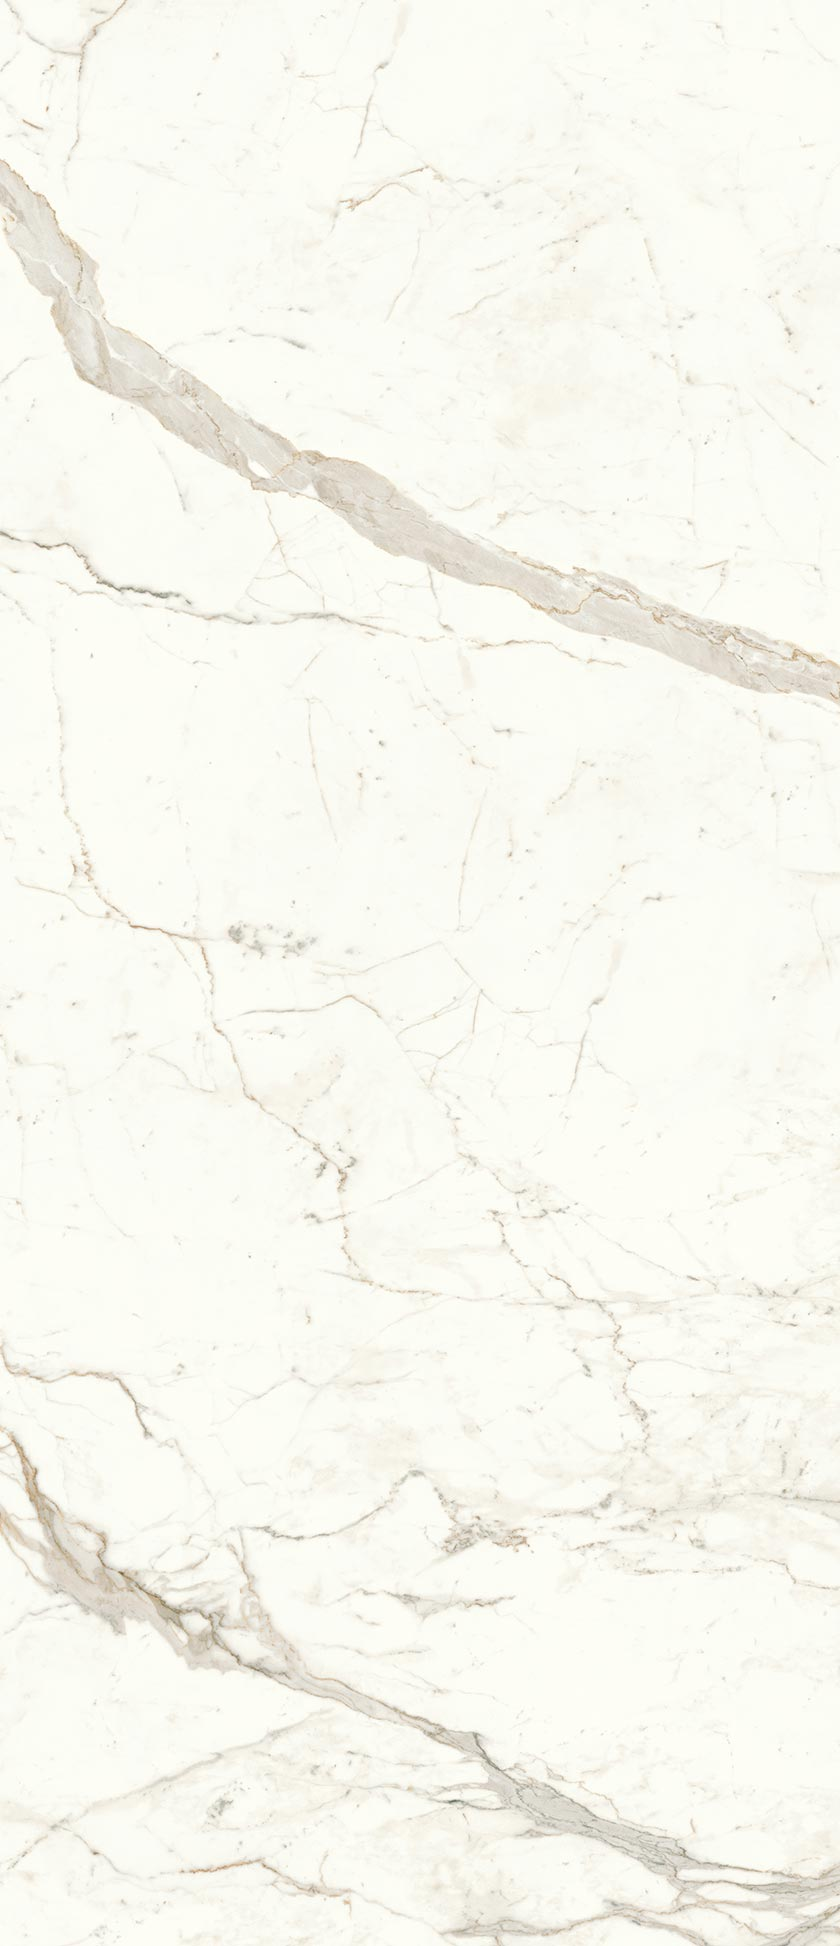 120x278-2-calacatta-prestigio-6mm-matte-large-sized-porcelain-tile